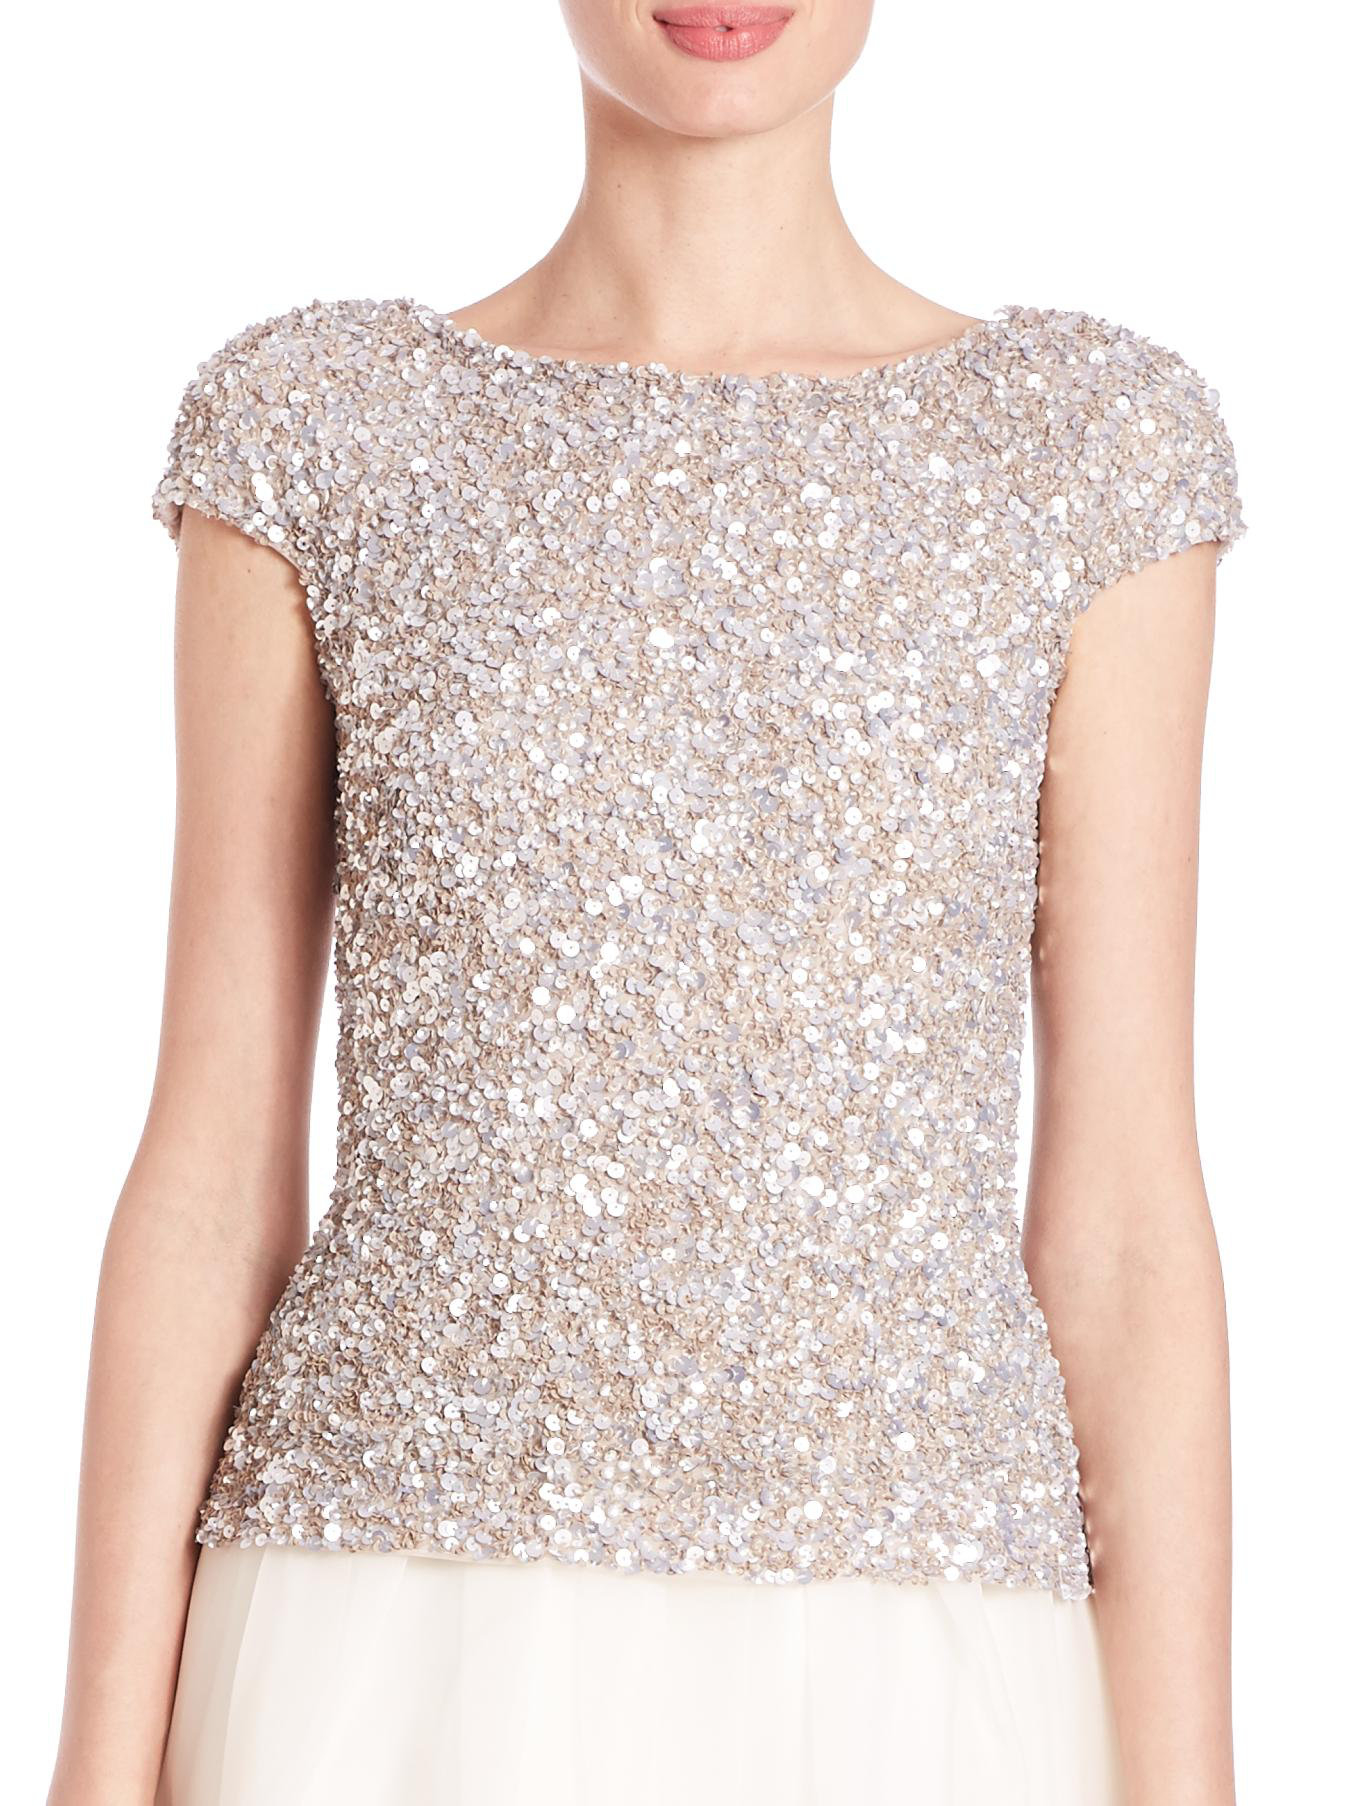 Top Women S Fashion Magazines: Theia Cap-sleeve Crunchy Sequin Top In Metallic